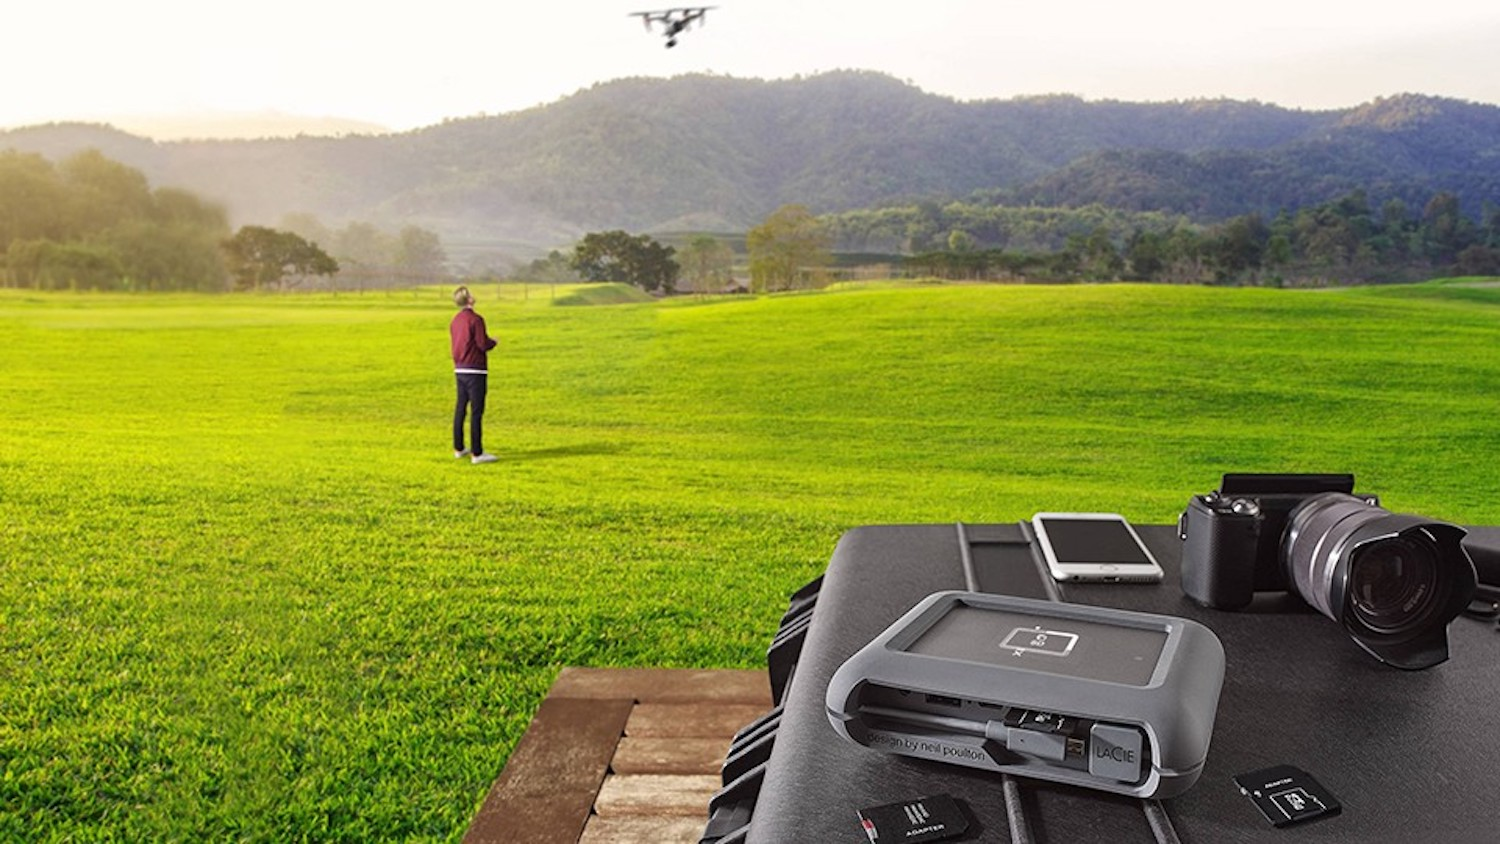 Apple now selling LaCie 2TB DJI Copilot BOSS drive for easily transferring files from drones & more